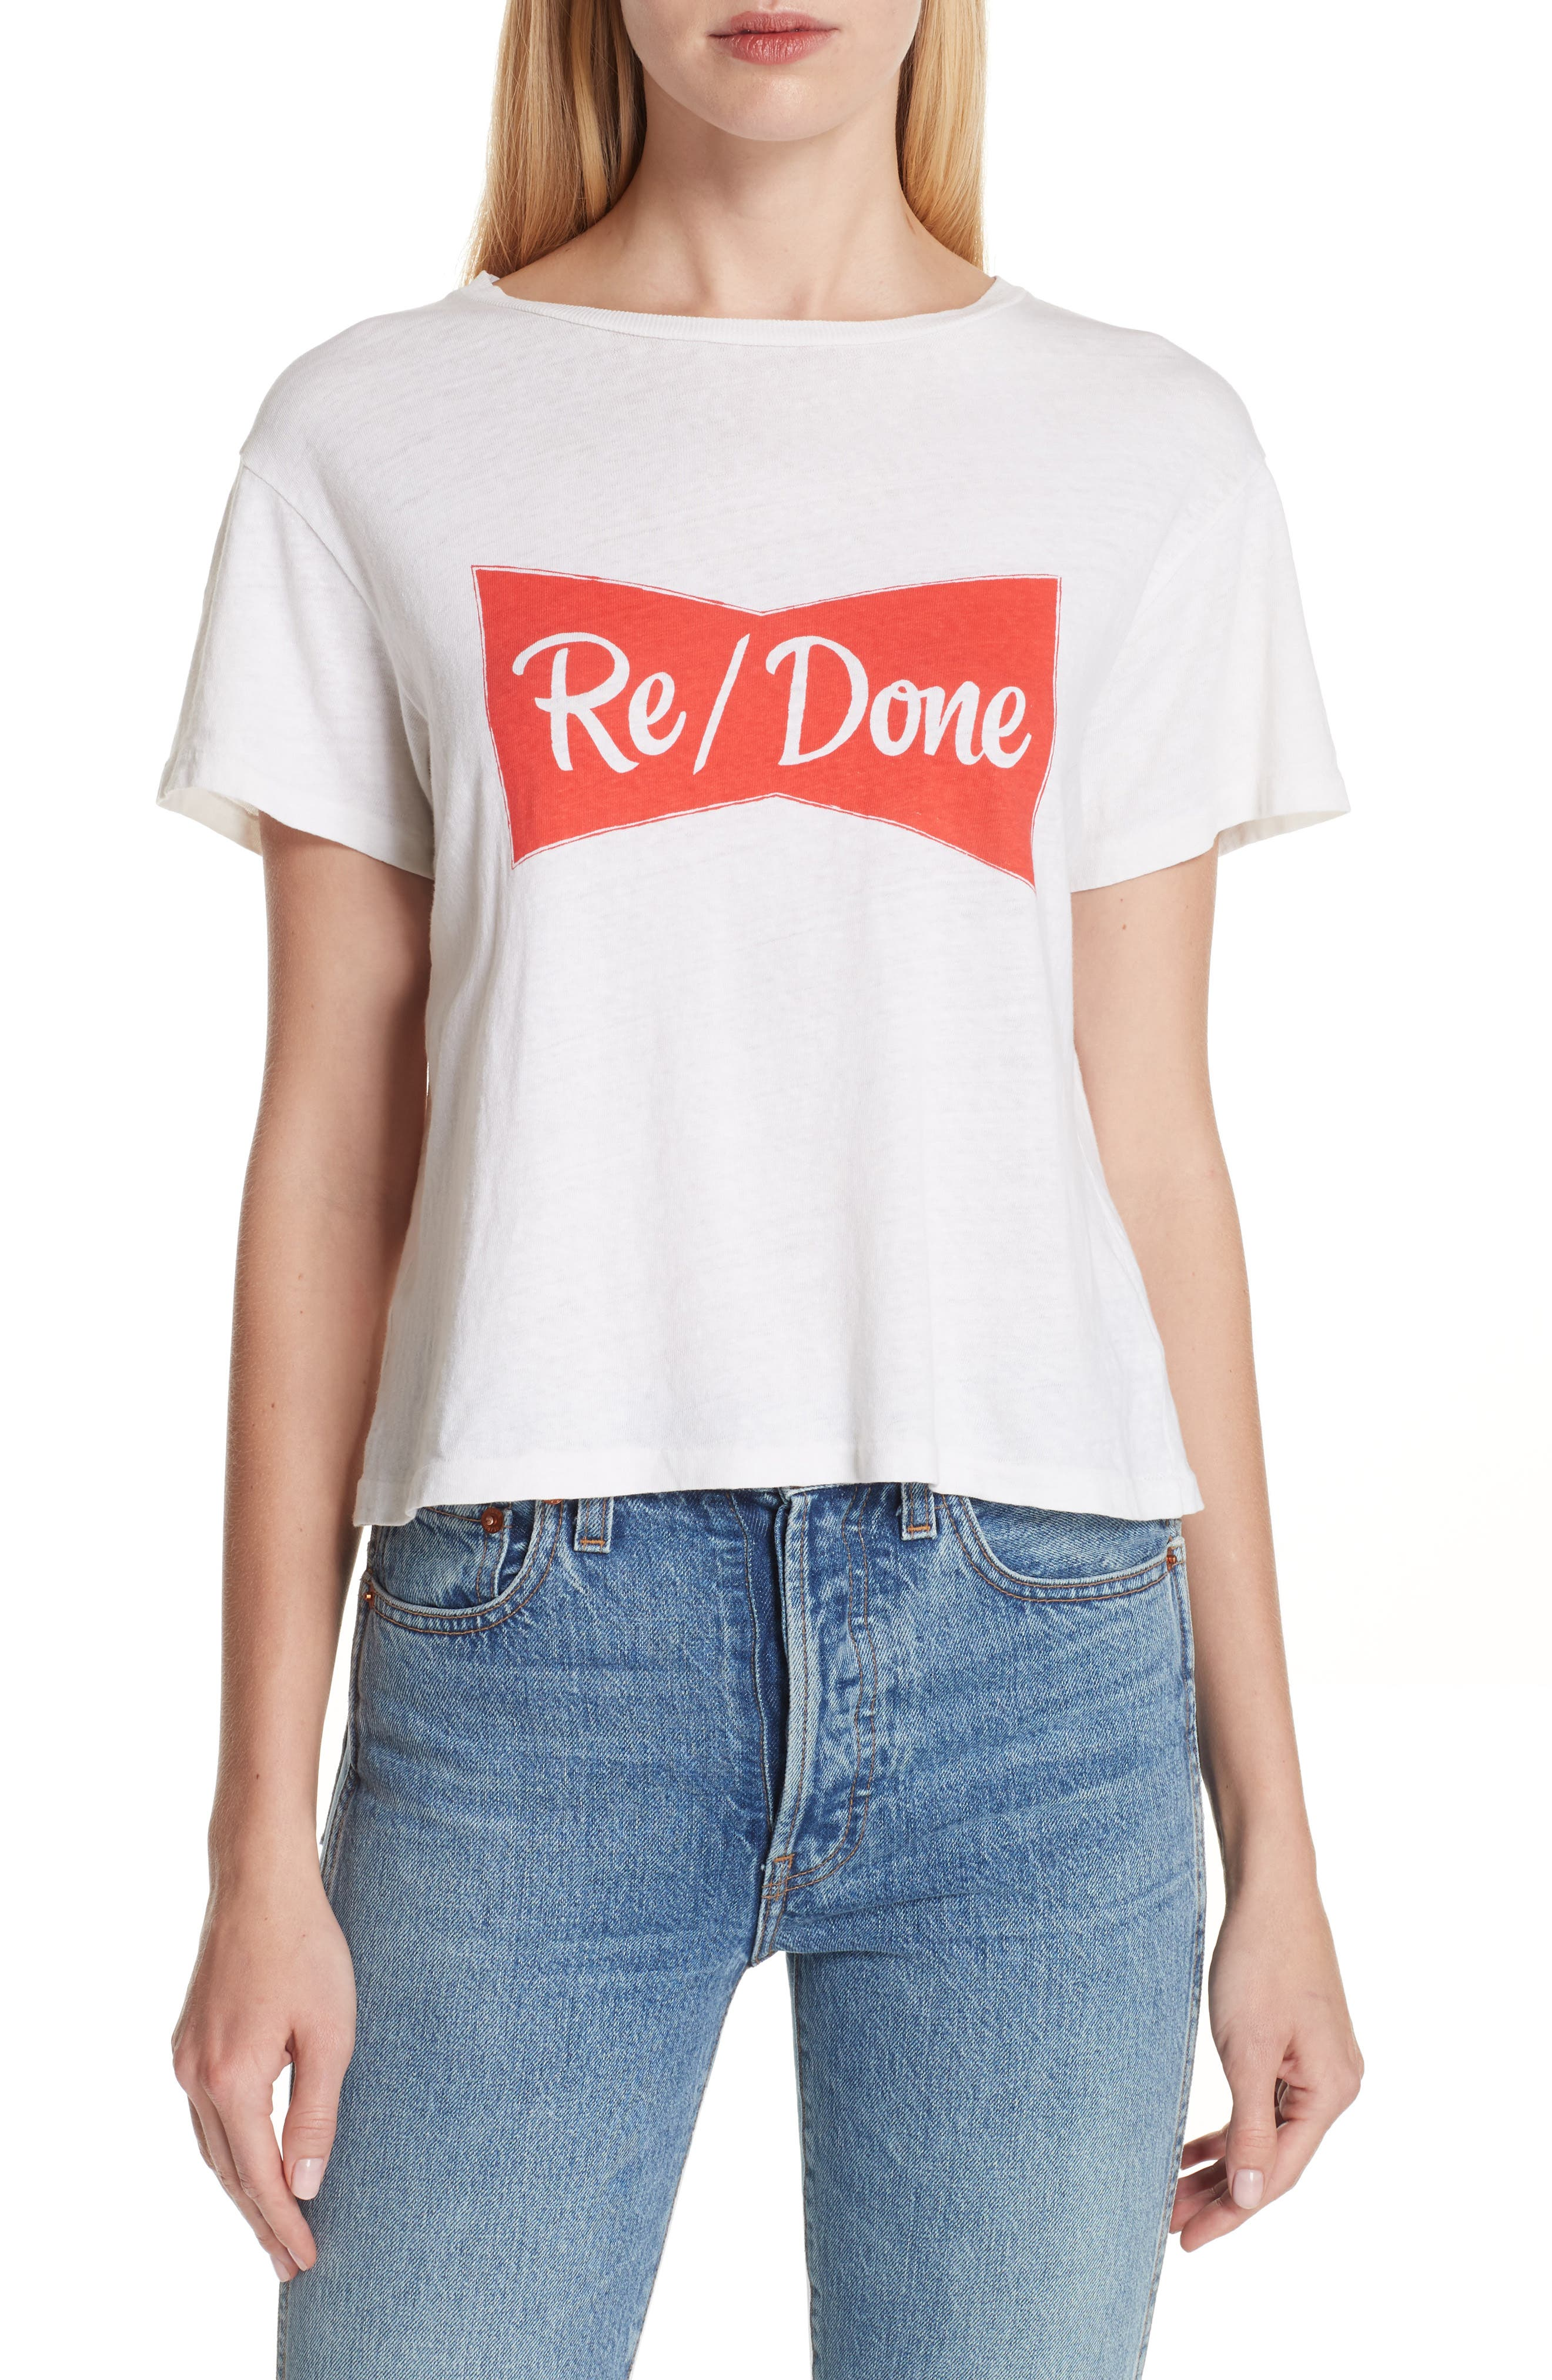 Ribbon Graphic Tee by Re/Done